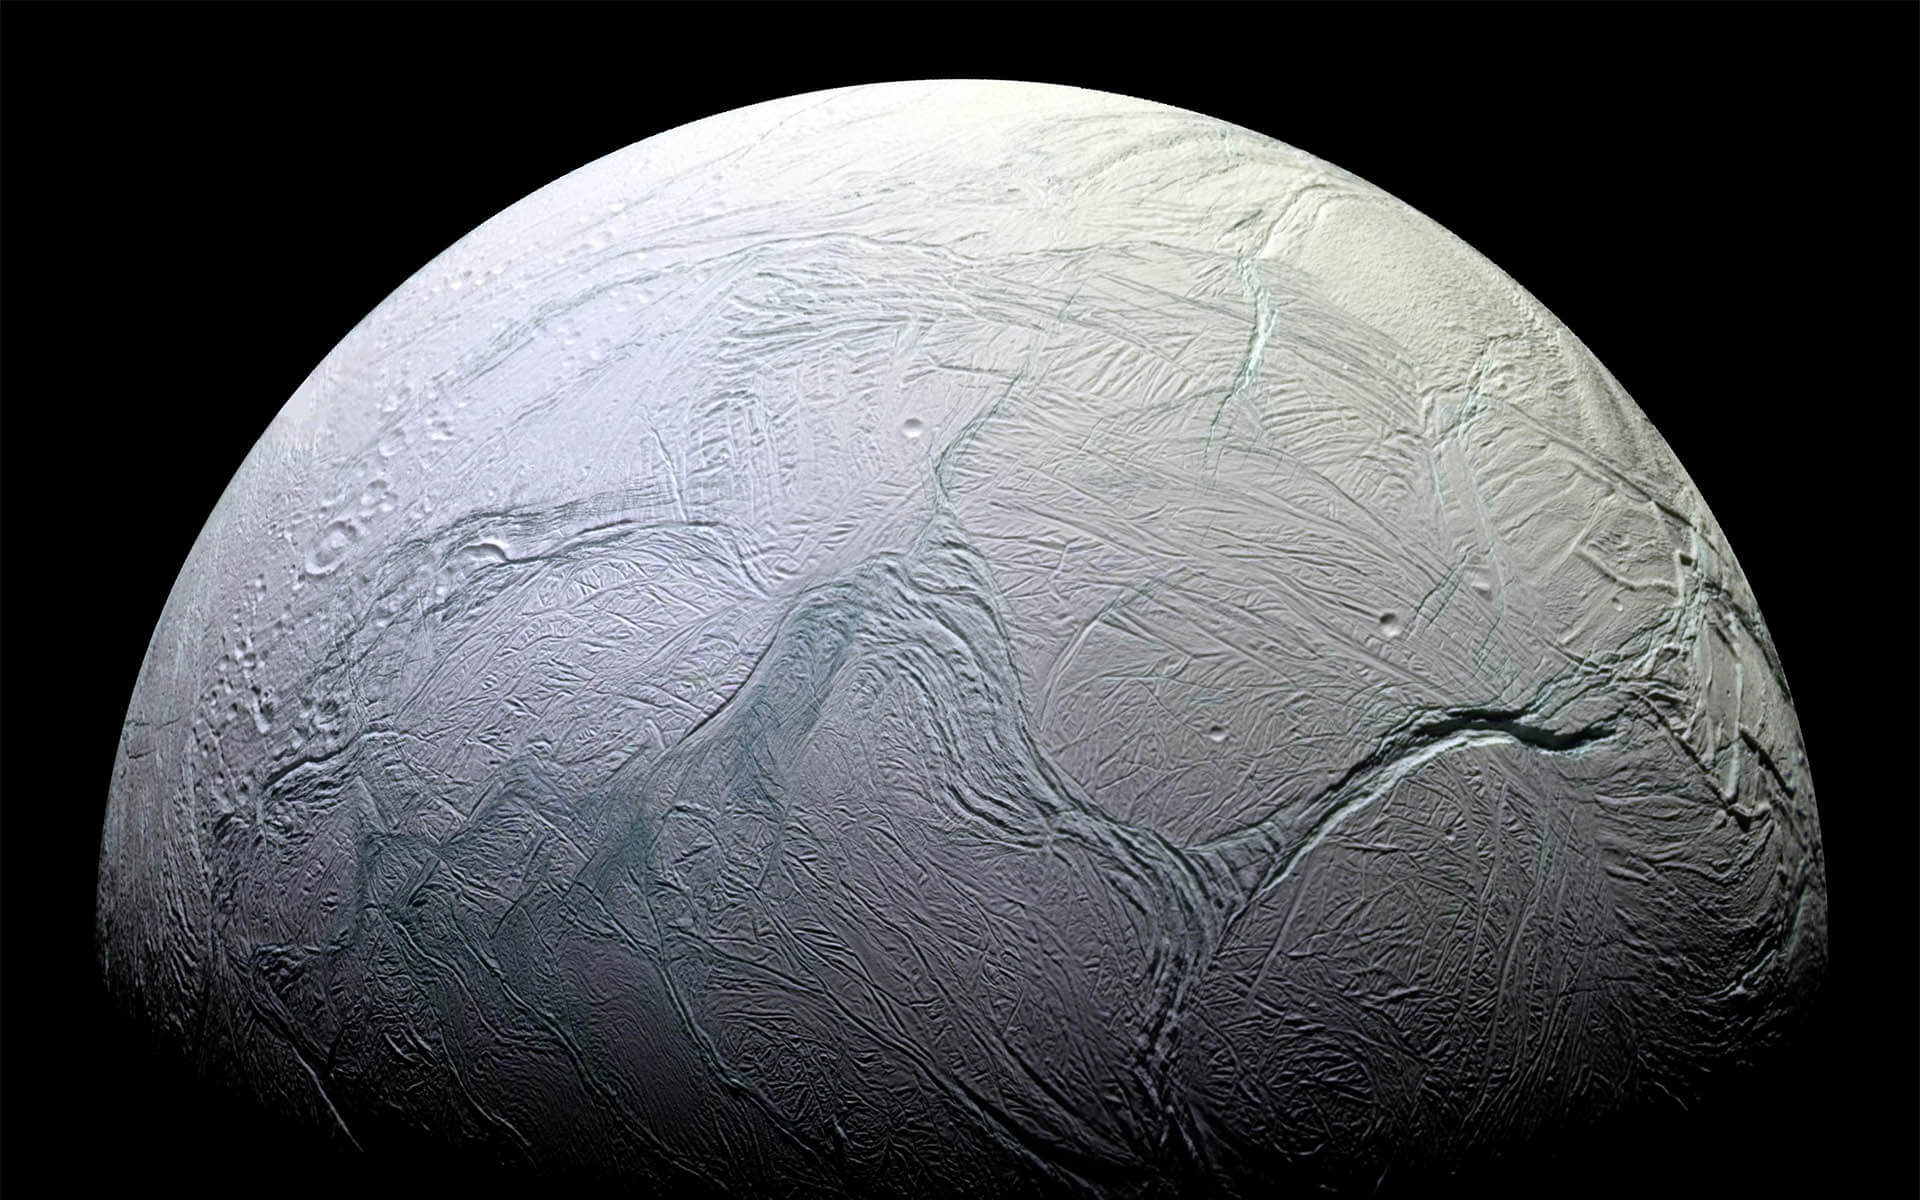 In the water of Saturn's moon found organic matter